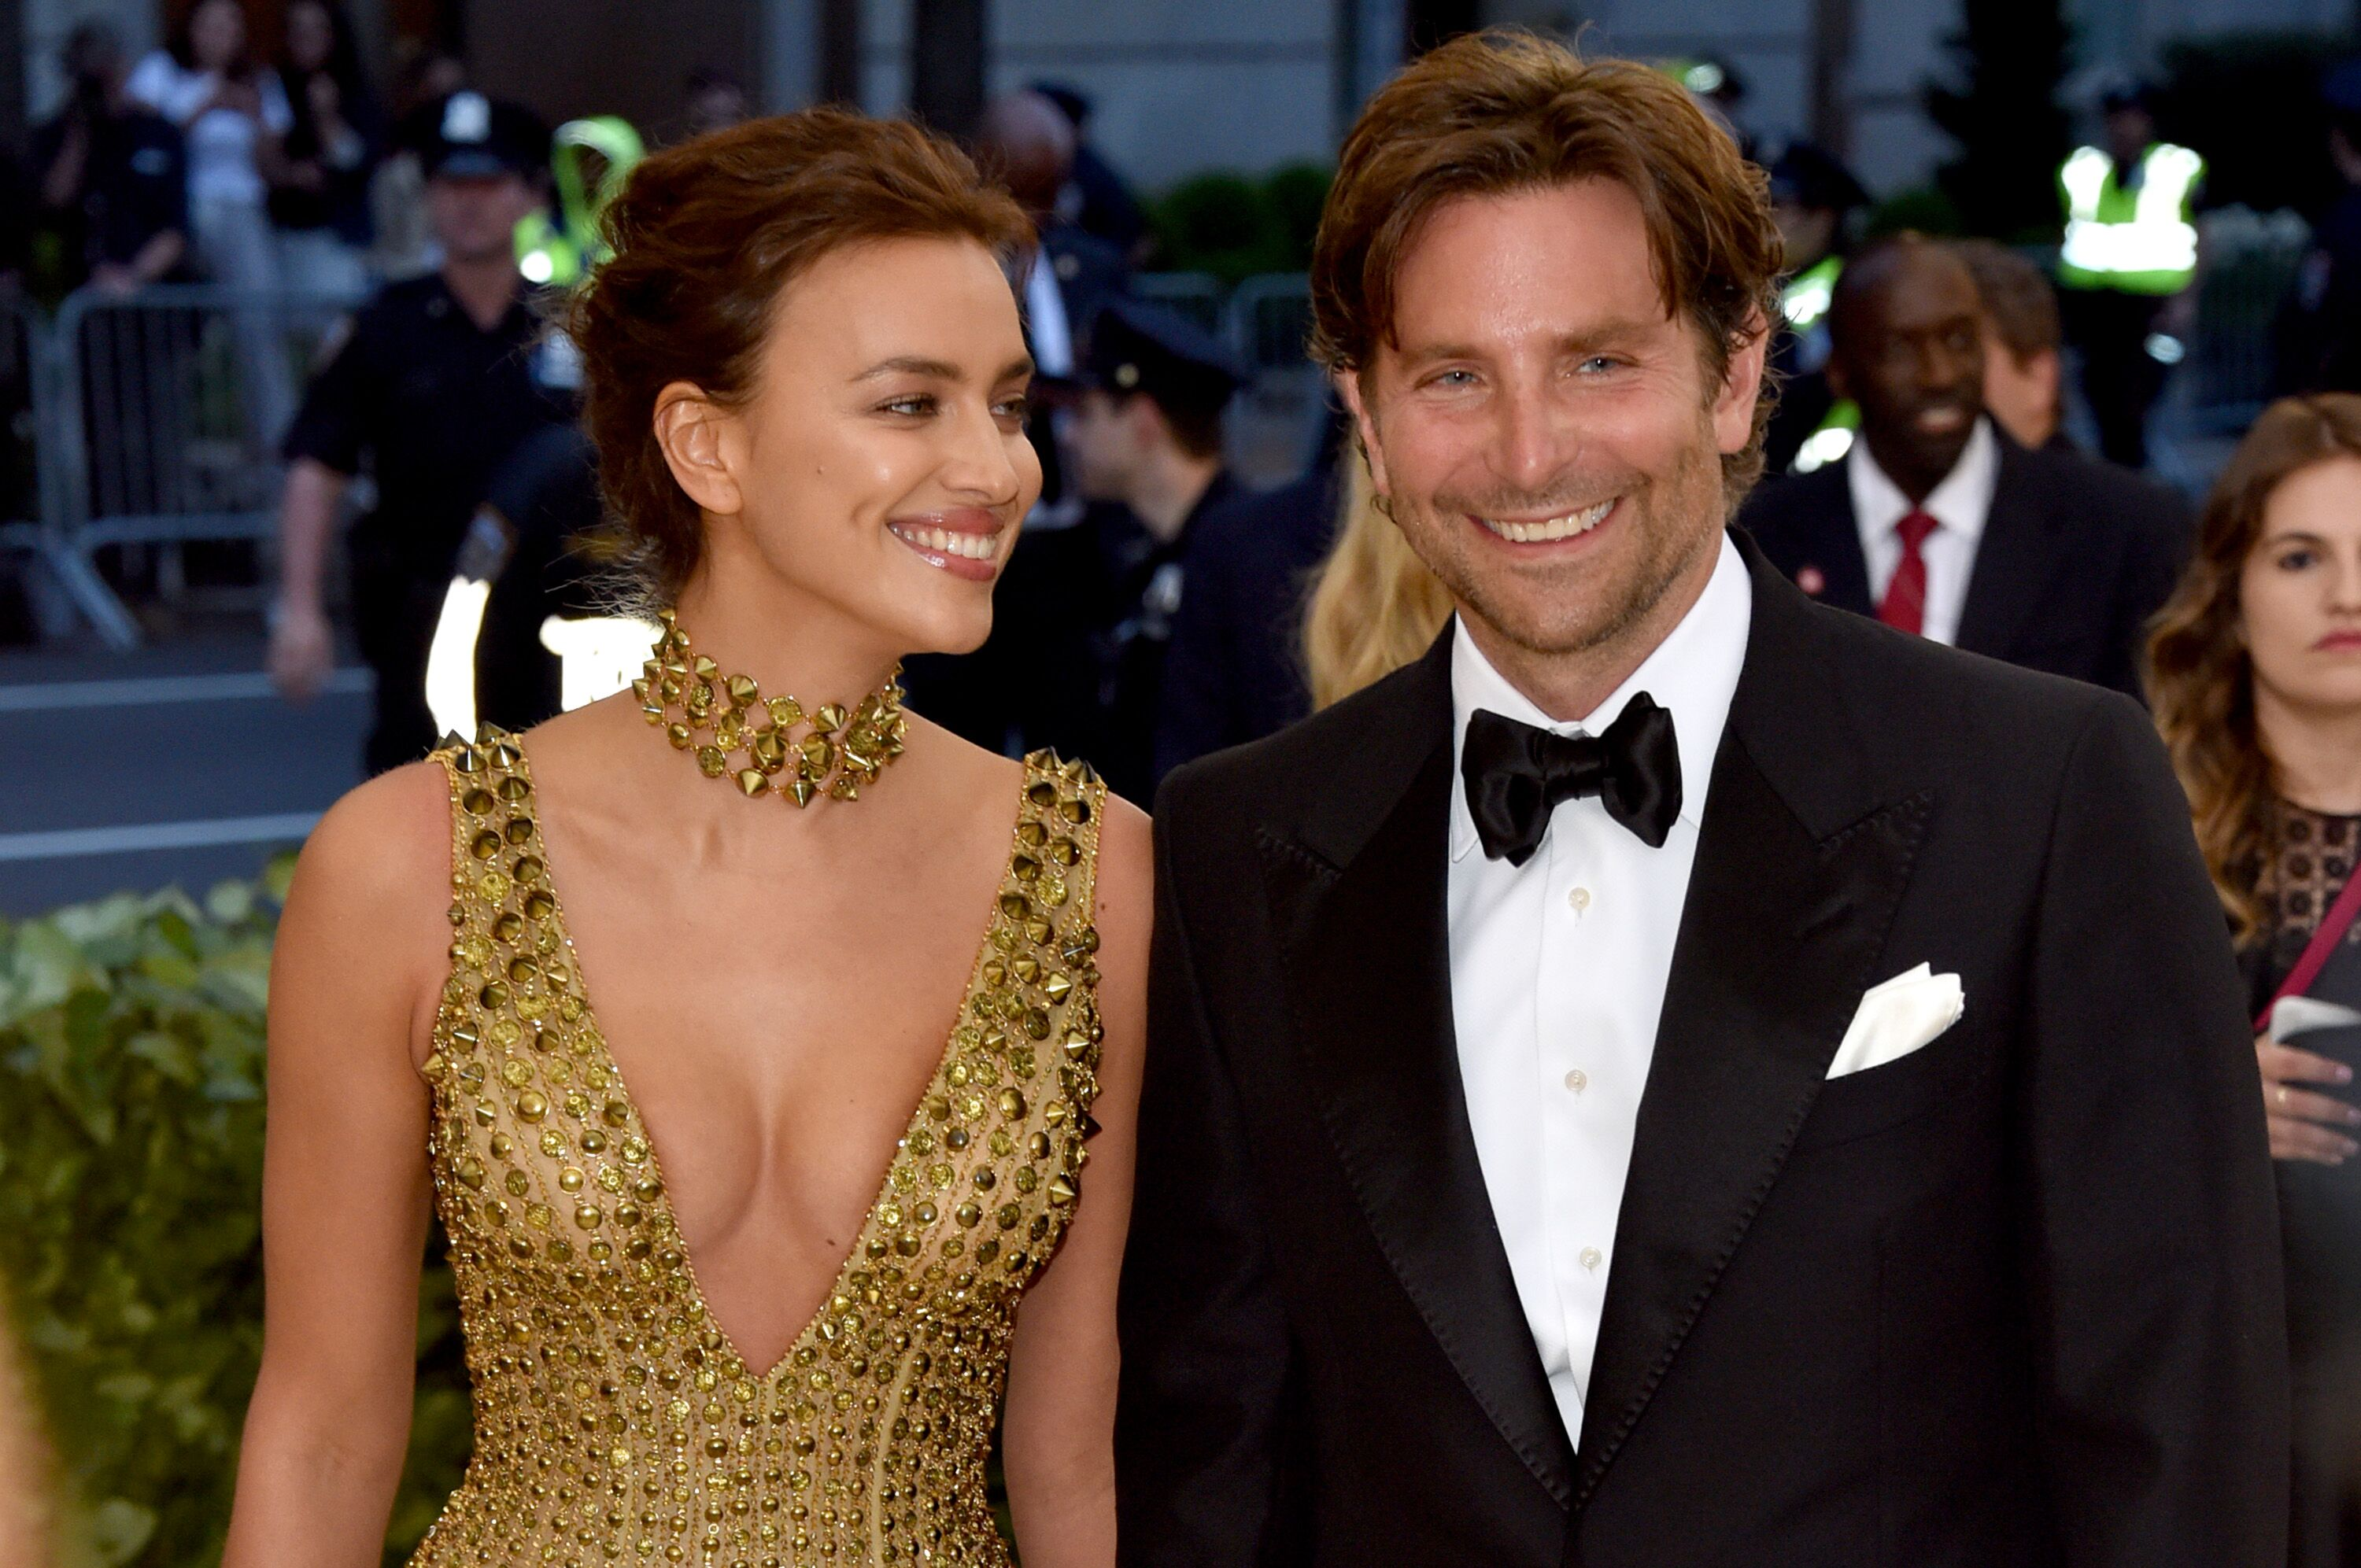 Bradley Cooper and Irina Shayk. | Source: Getty Images